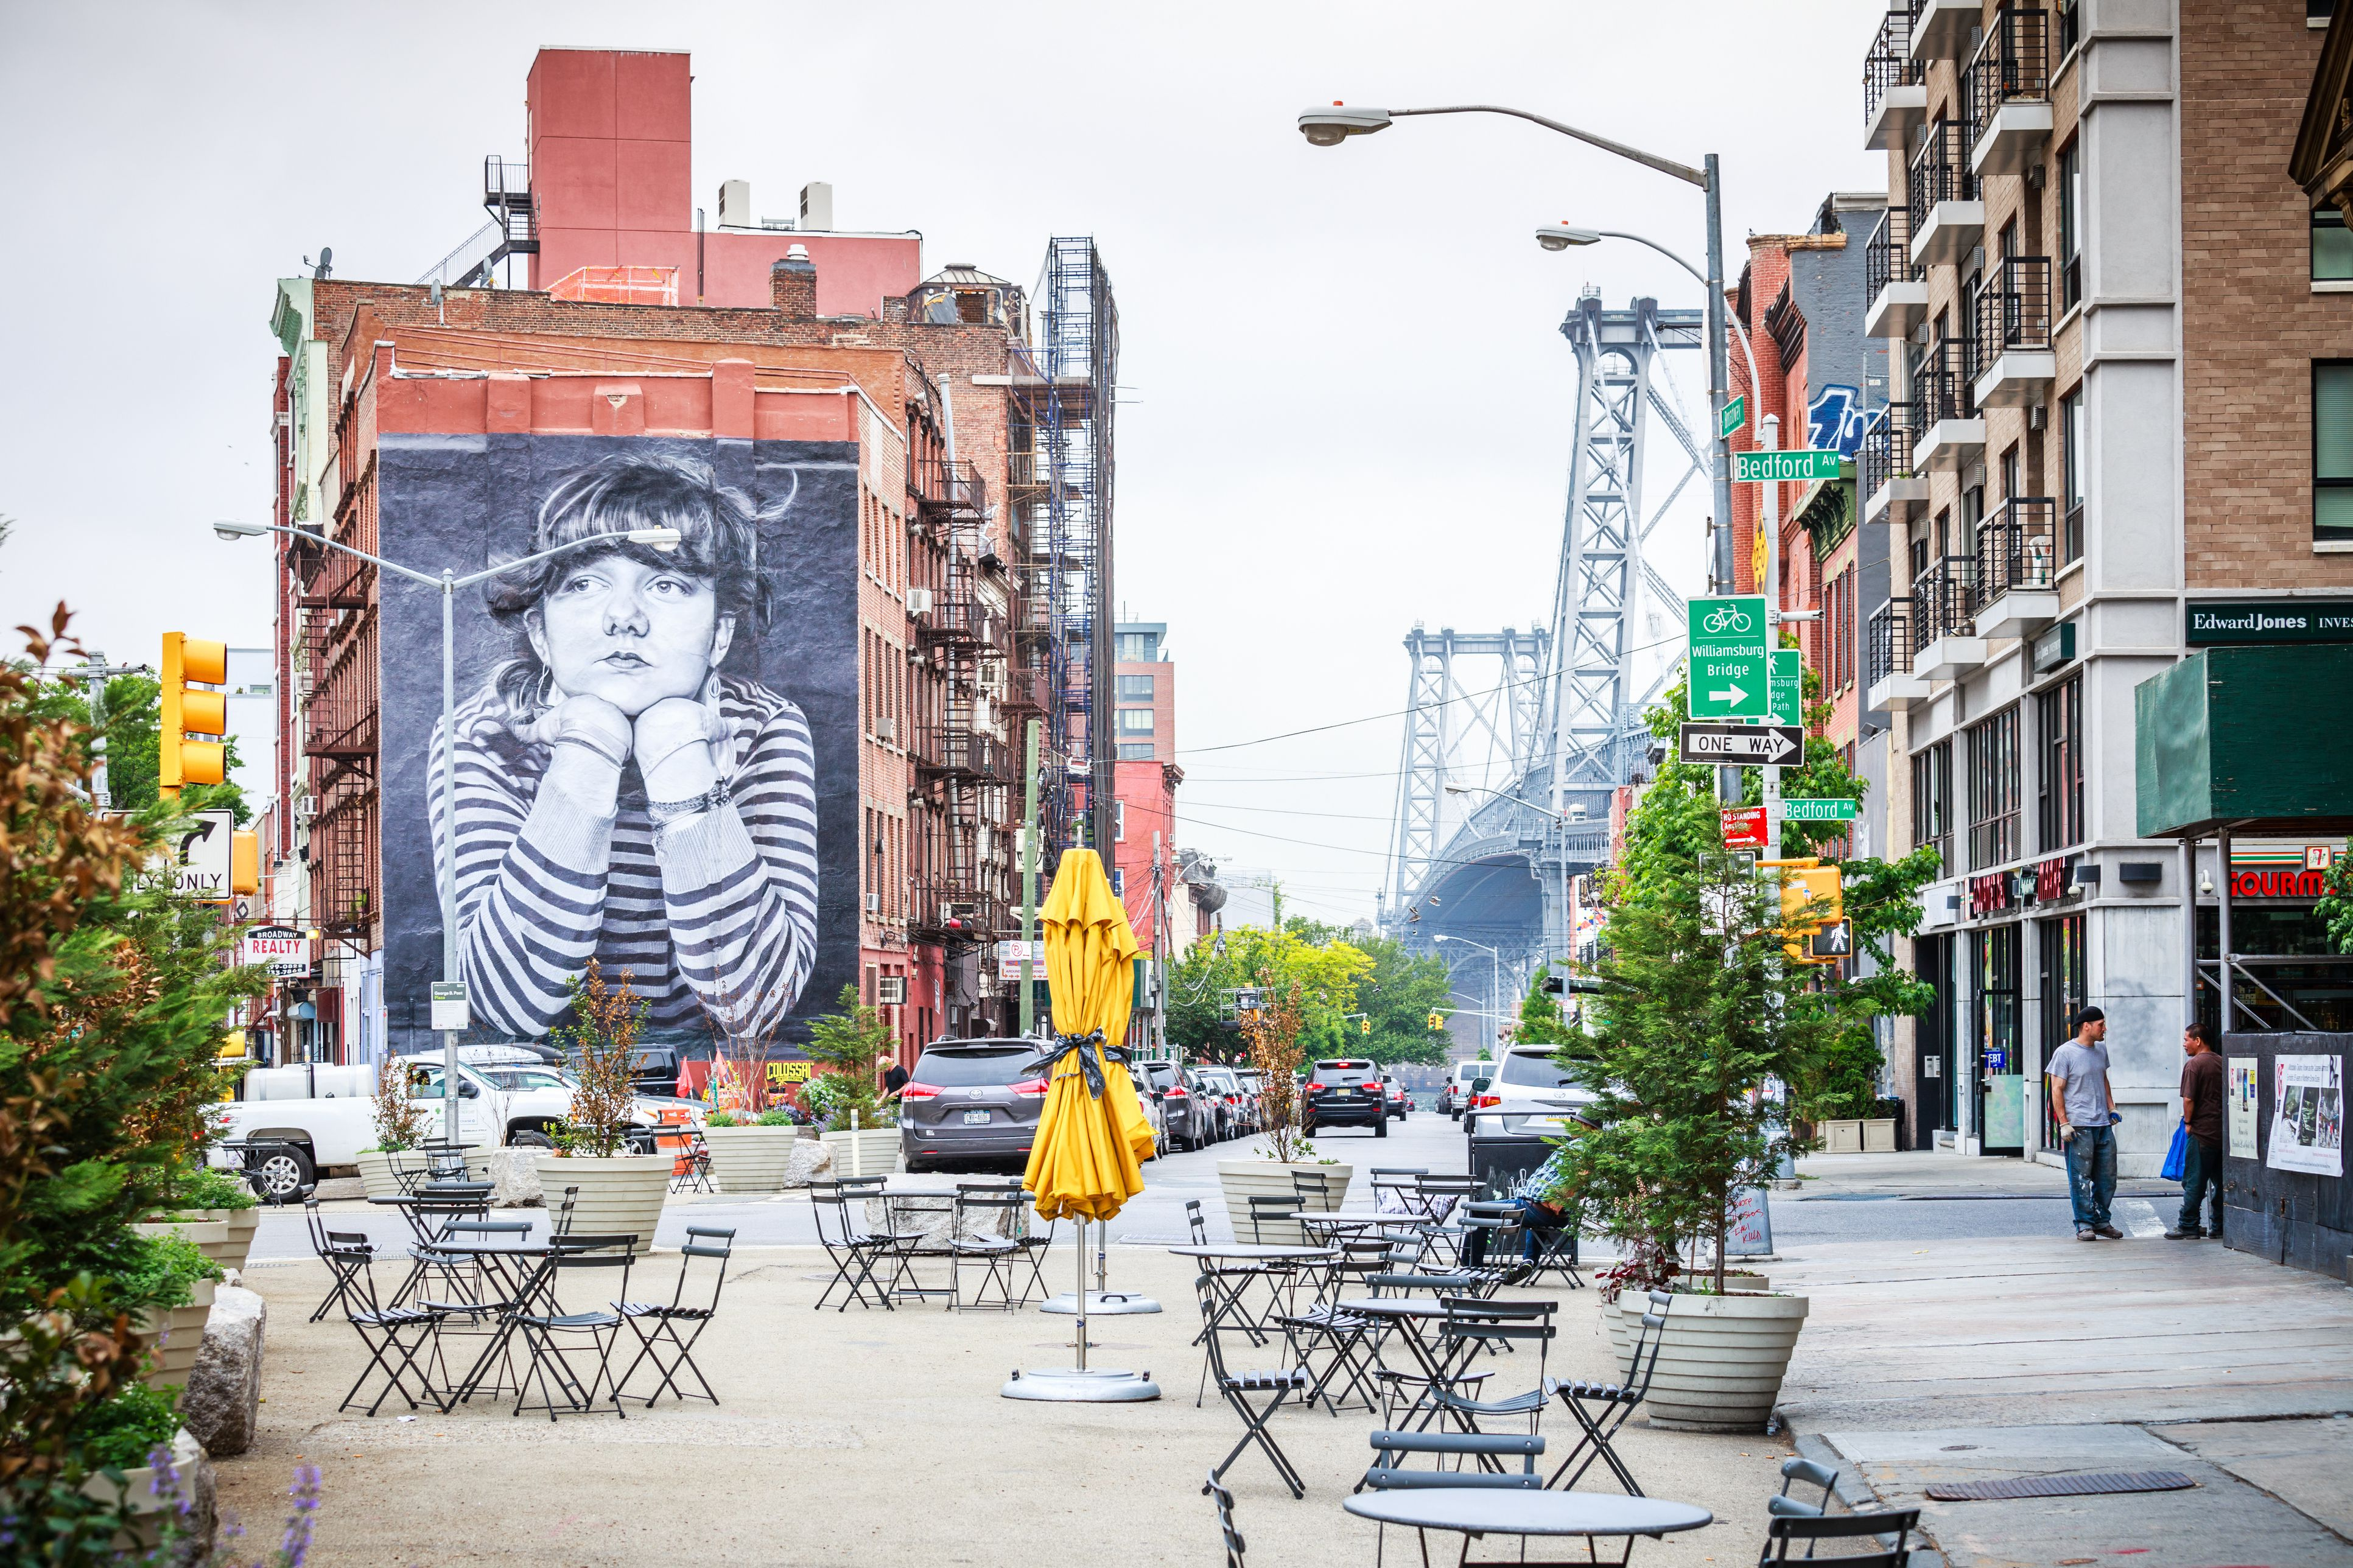 Williamsburg Visitors Guide: Things to Do and See